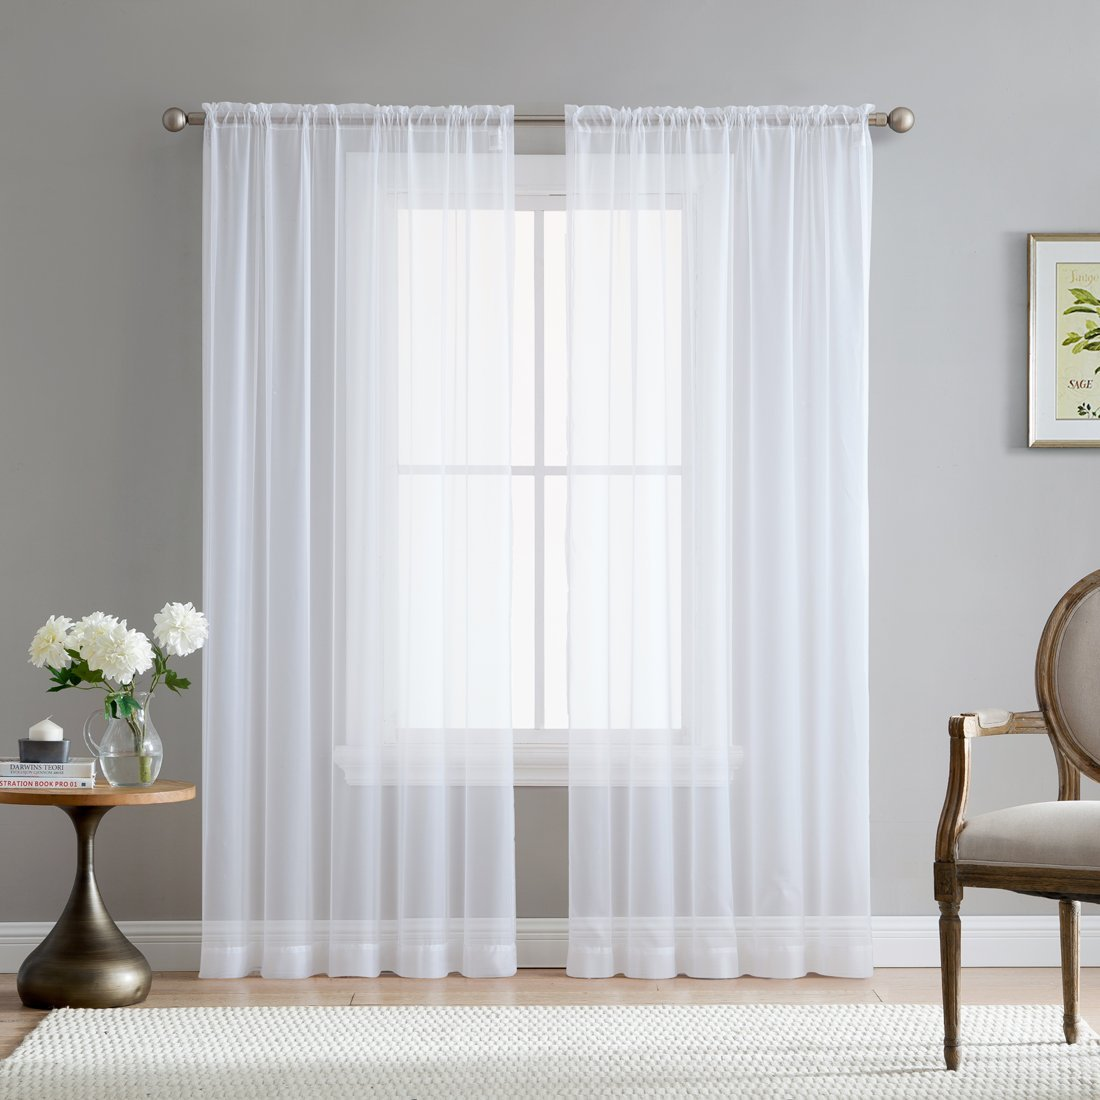 HCL.ME Sheer Curtain Voile Panel (set of 2), $12.99